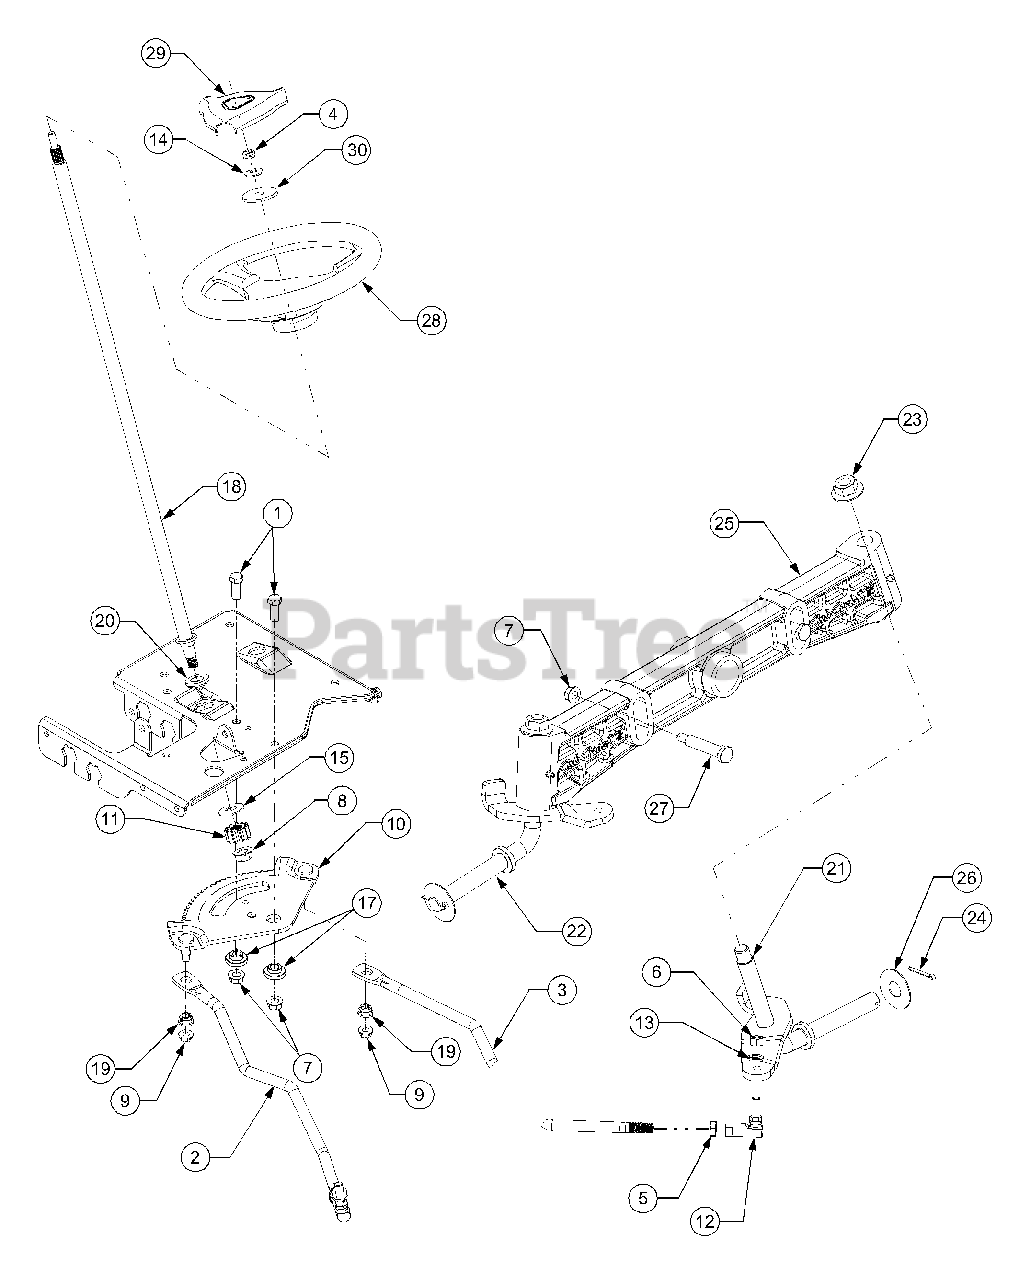 Cub Cadet Parts On The Steering Diagram For 1525  13a-221f100